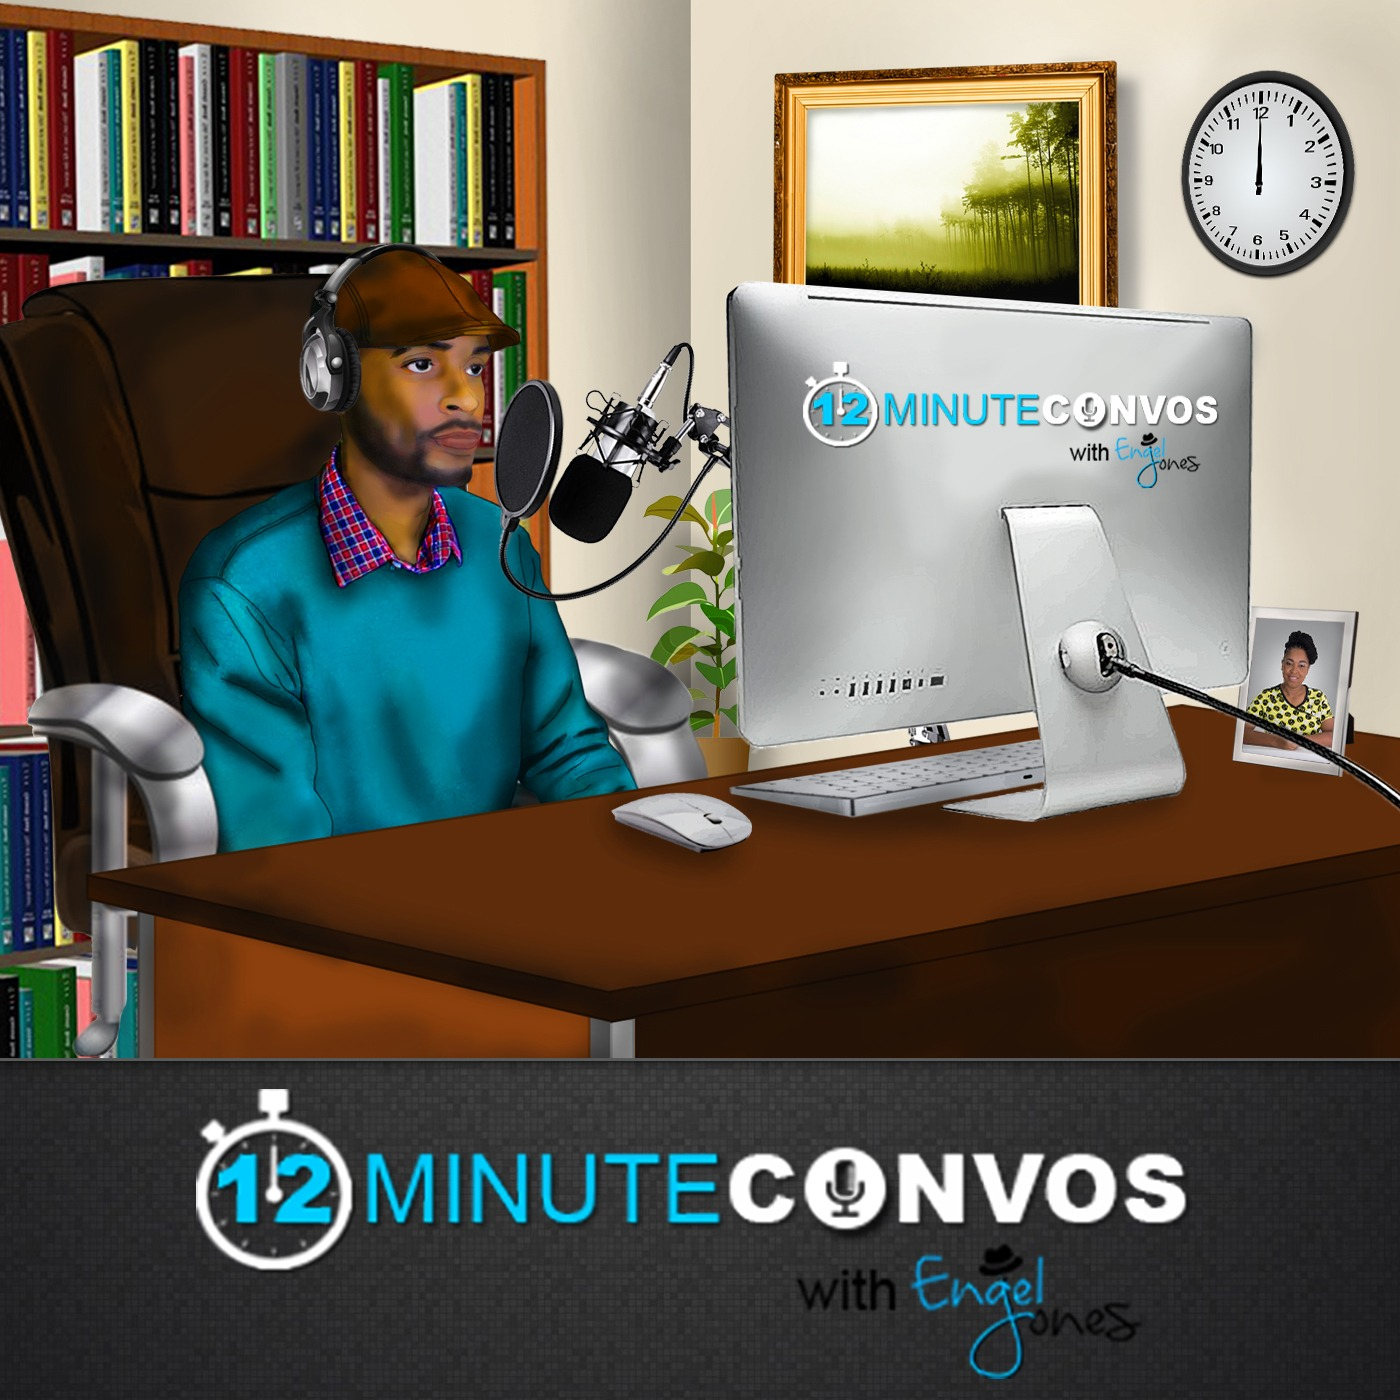 Twelve Minute Convos Logo